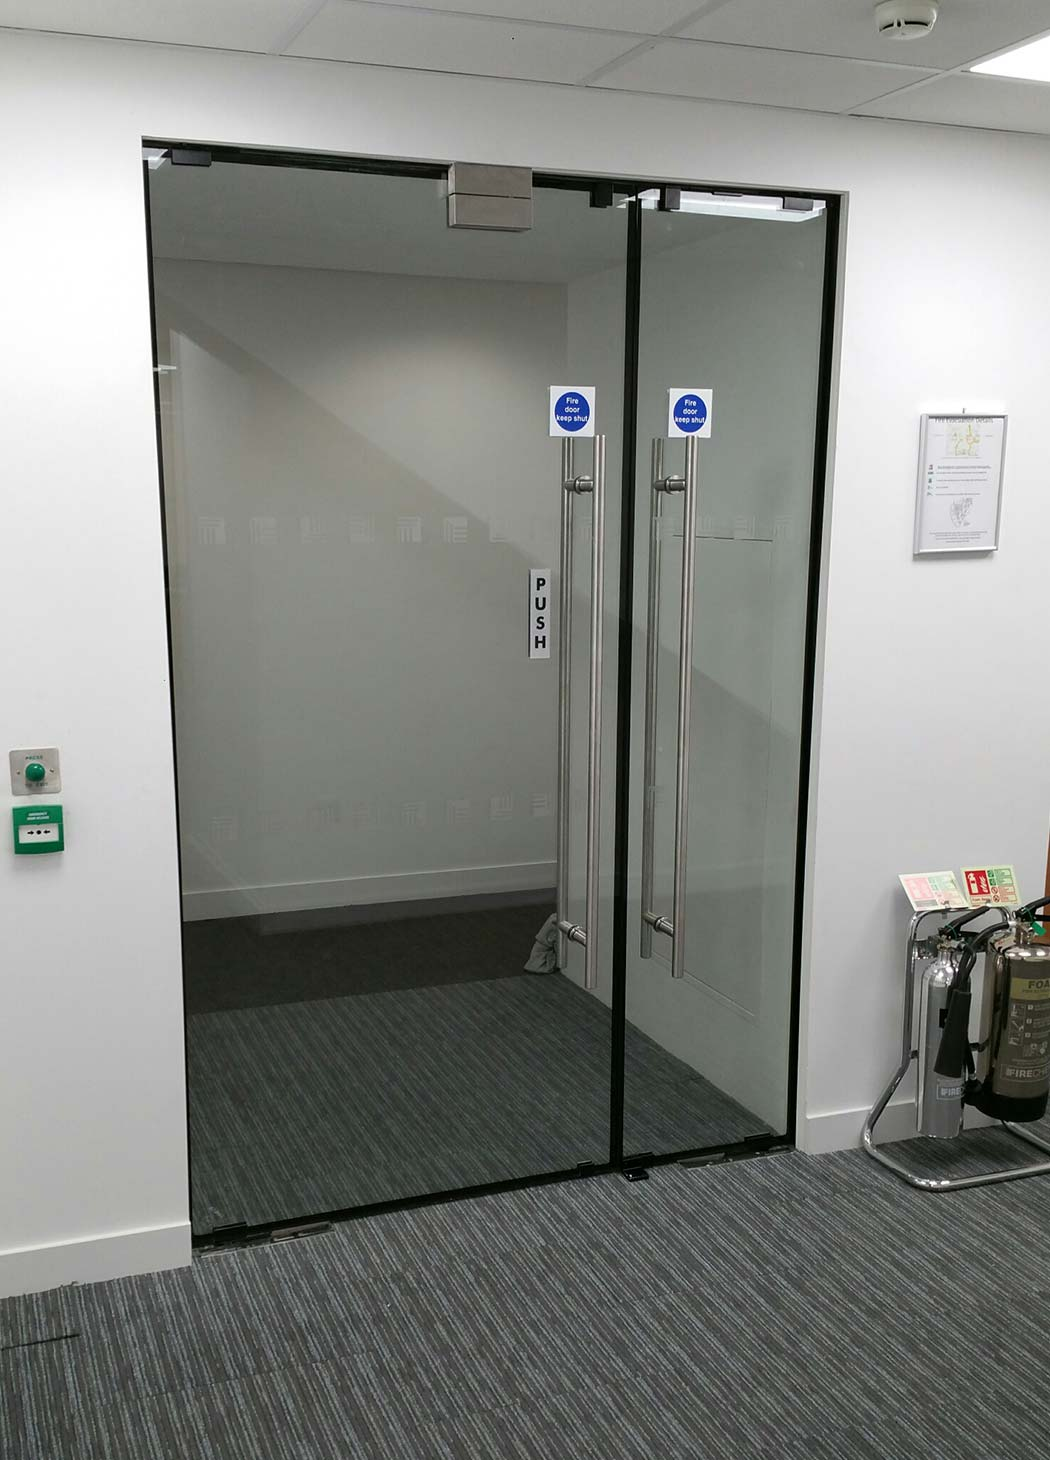 Fire rated glass glasstec systems lunax fire resistant glass door planetlyrics Choice Image